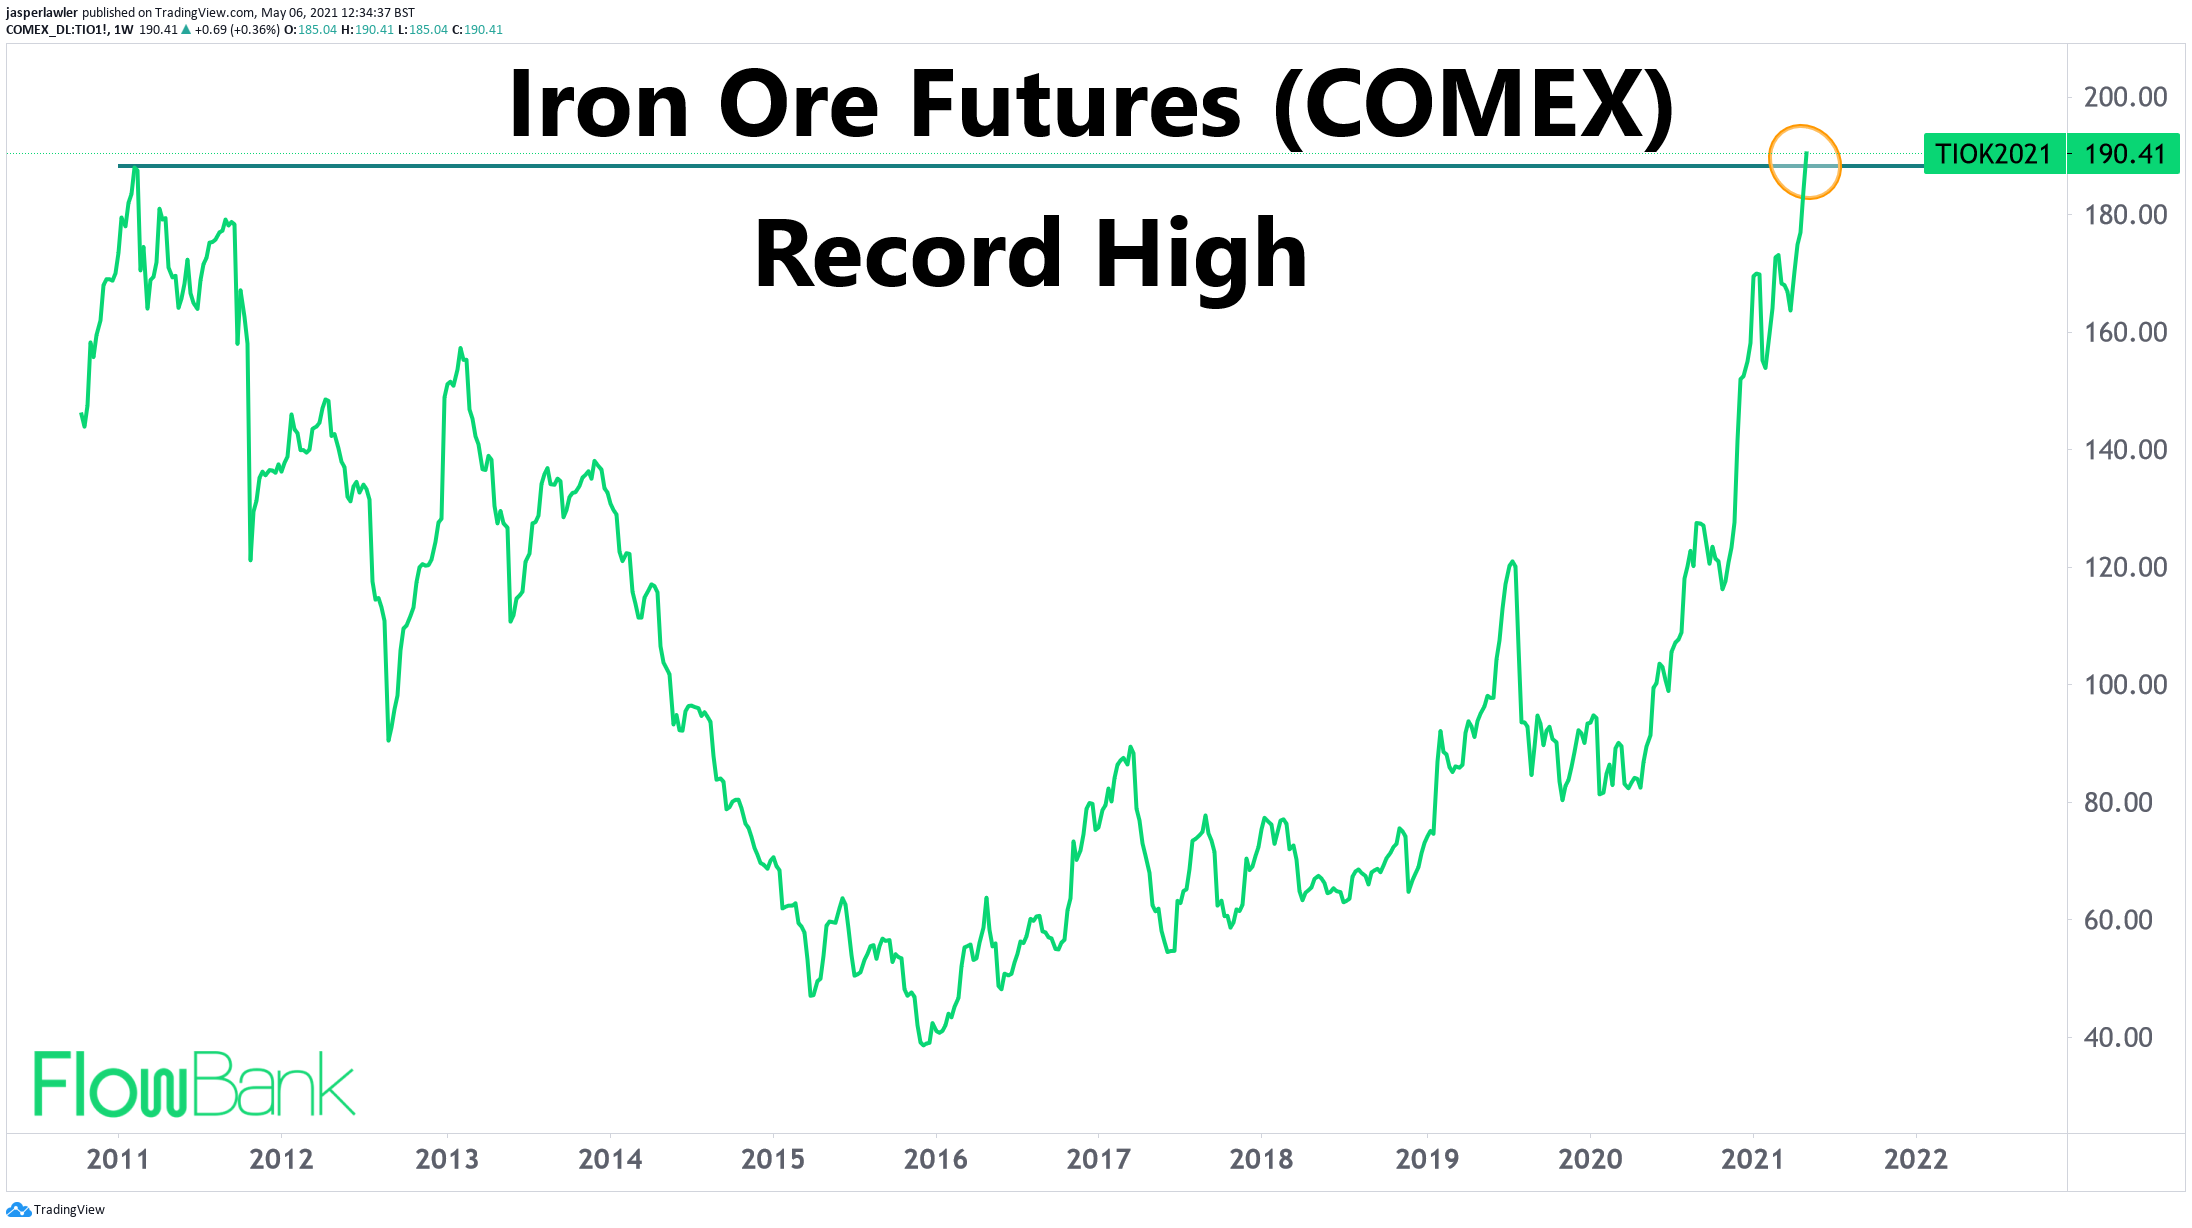 Iron Ore Futures on the COMEX hit record high